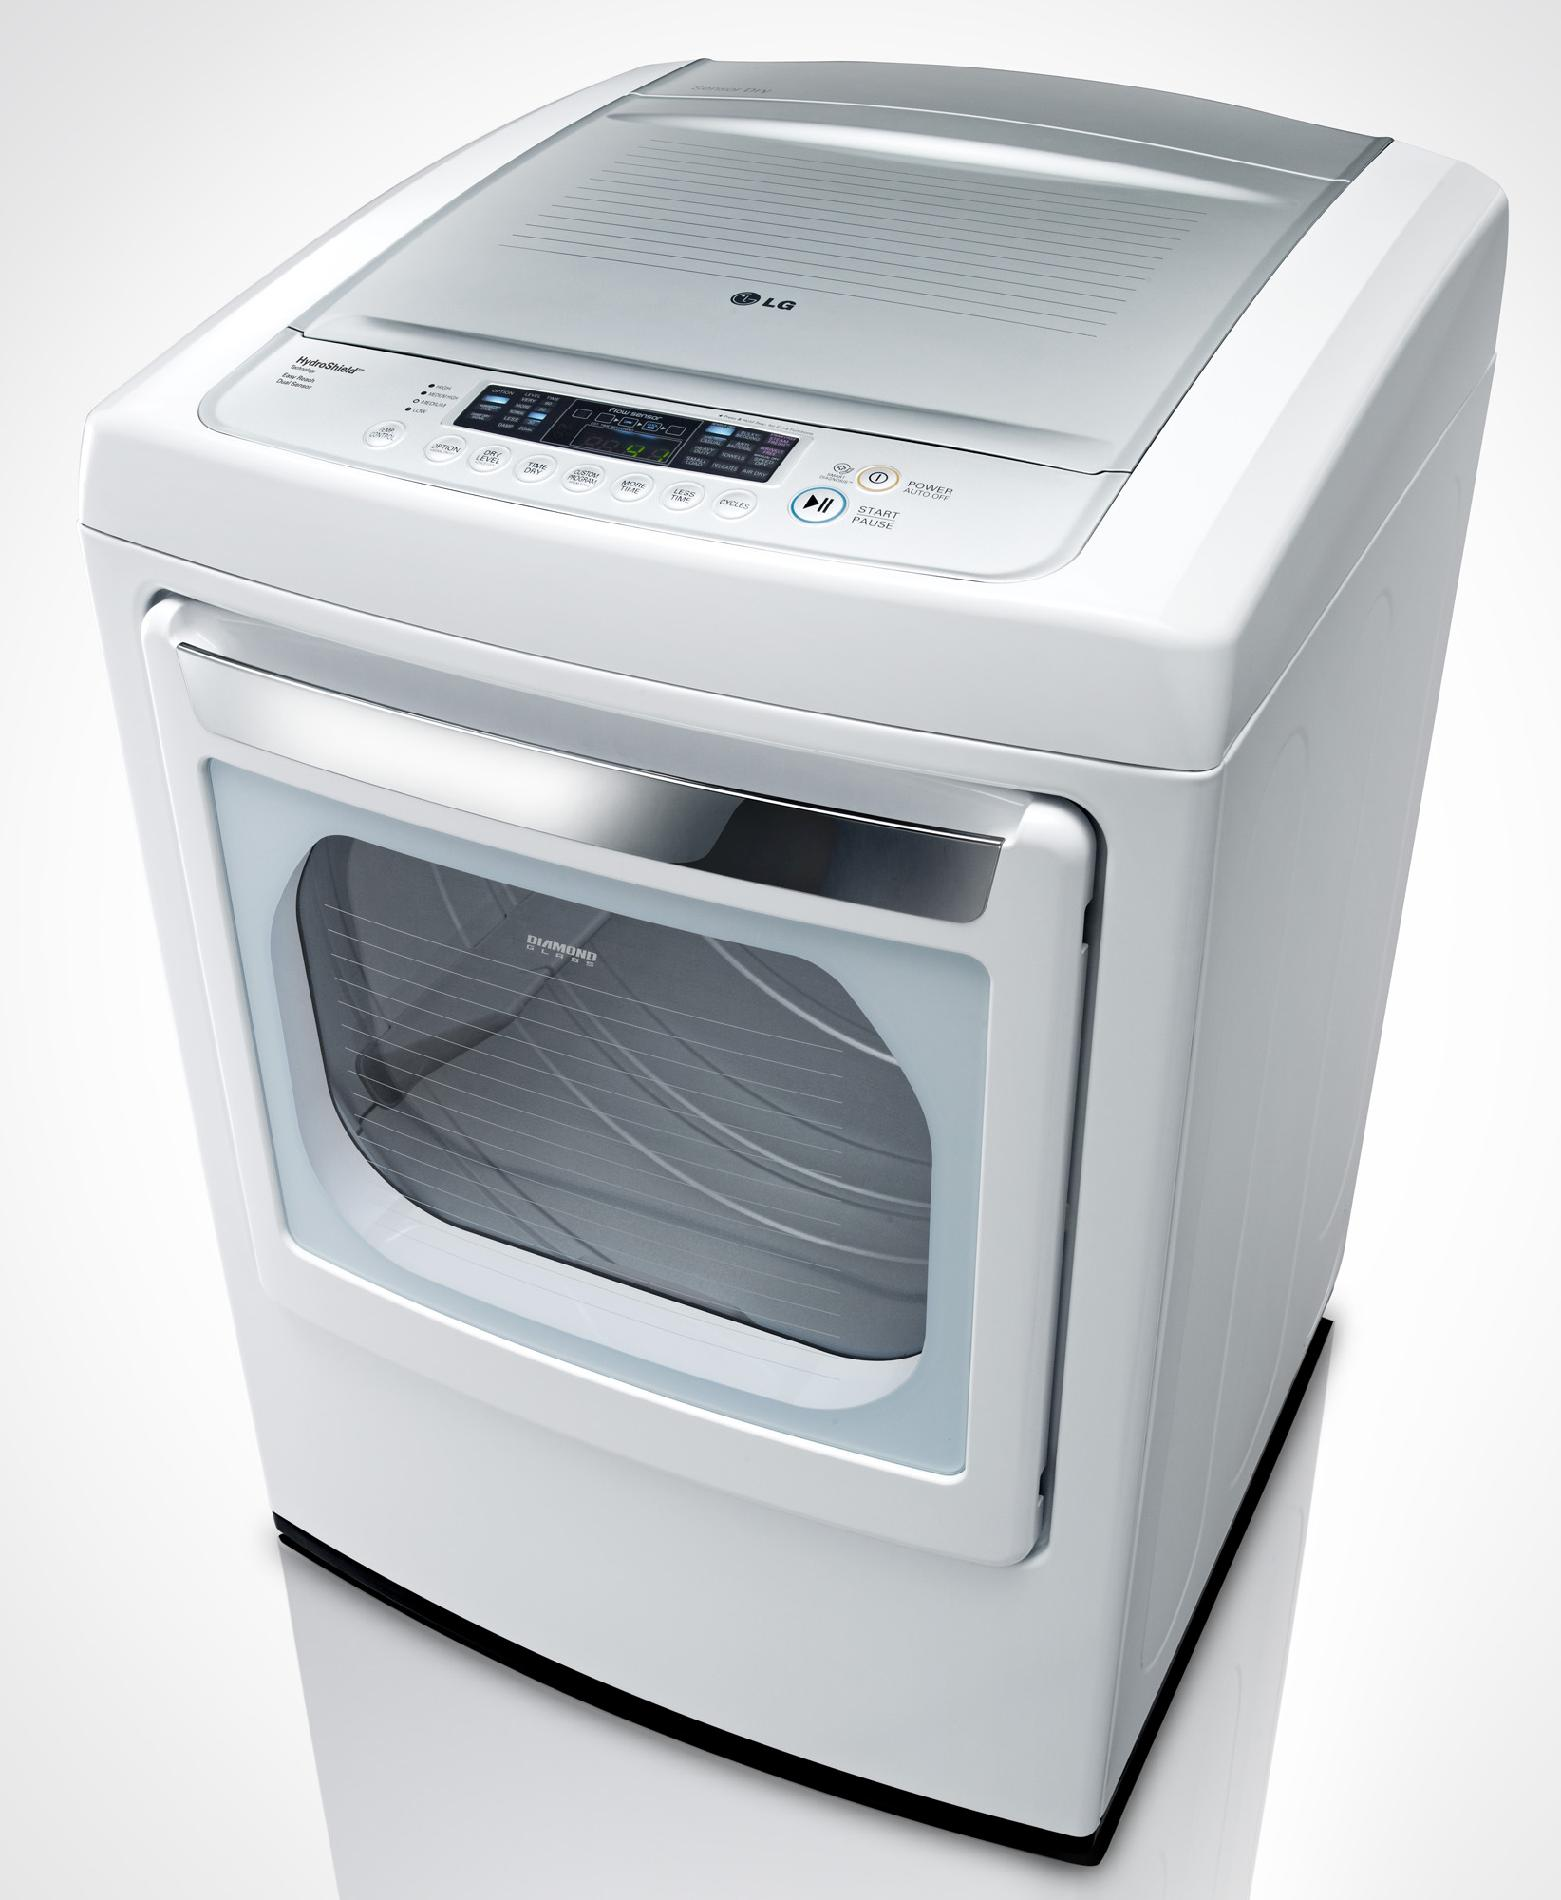 LG 7.3 cu. ft. Gas Dryer w/ SteamFresh™ - White